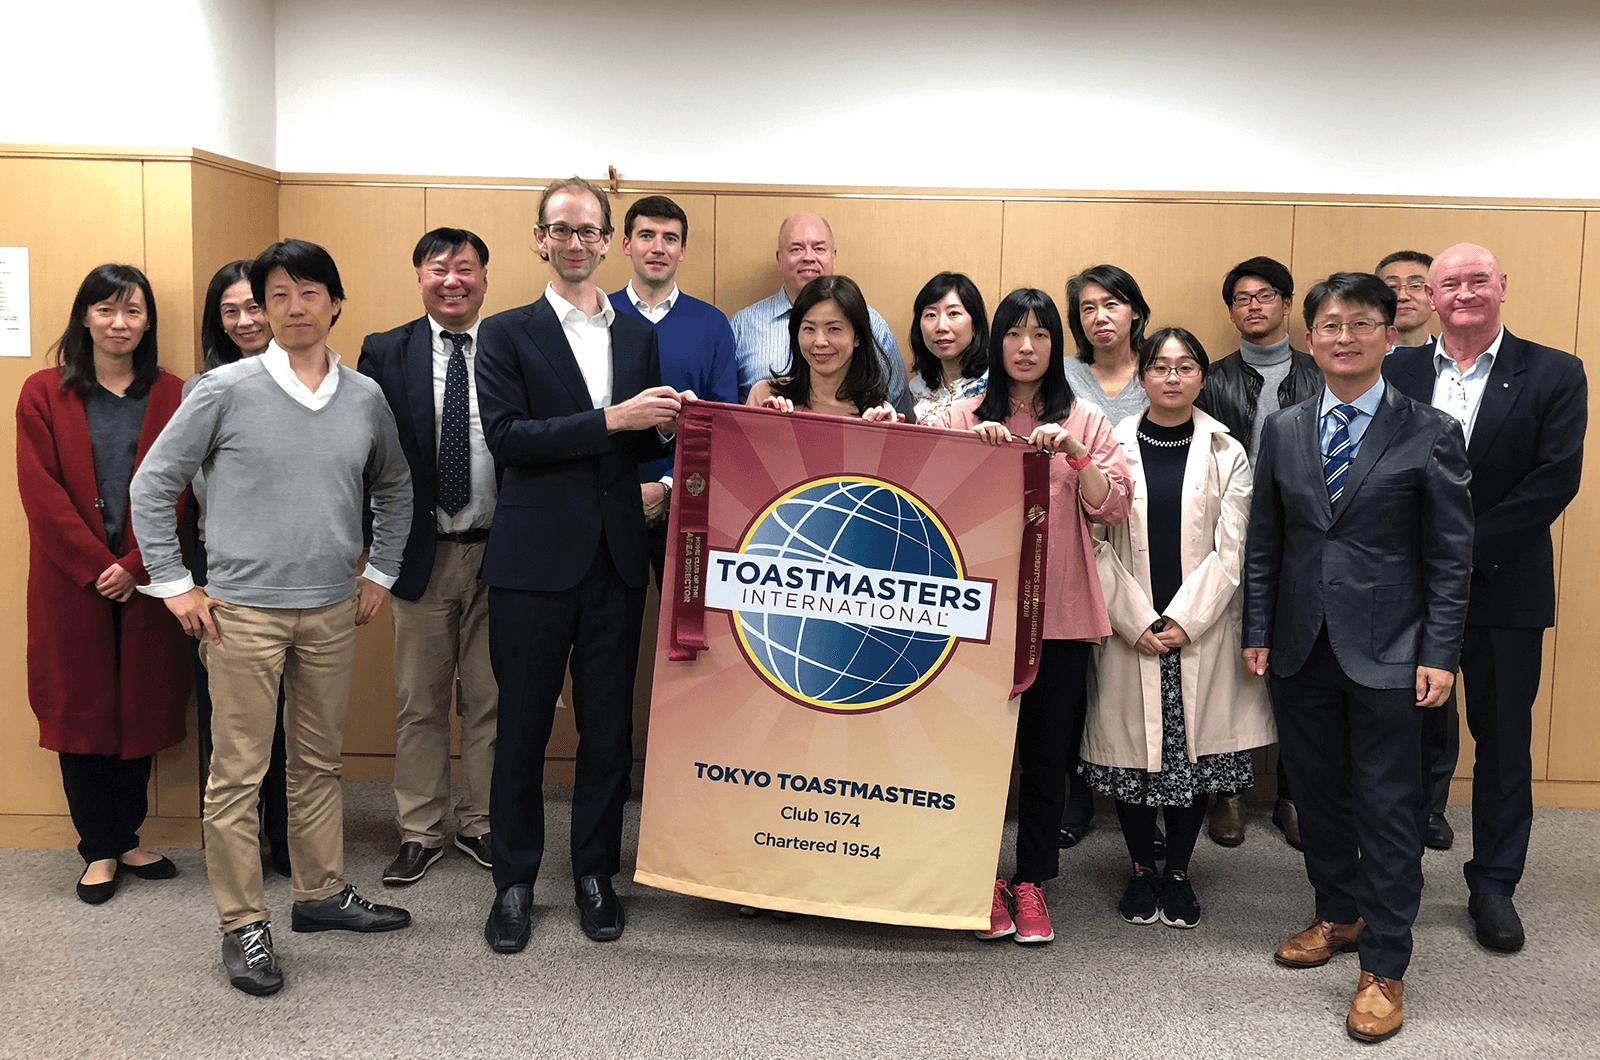 Club Pledge: When new members join the Tokyo Toastmasters in Japan, they read aloud a customized version of the Toastmaster's Promise.